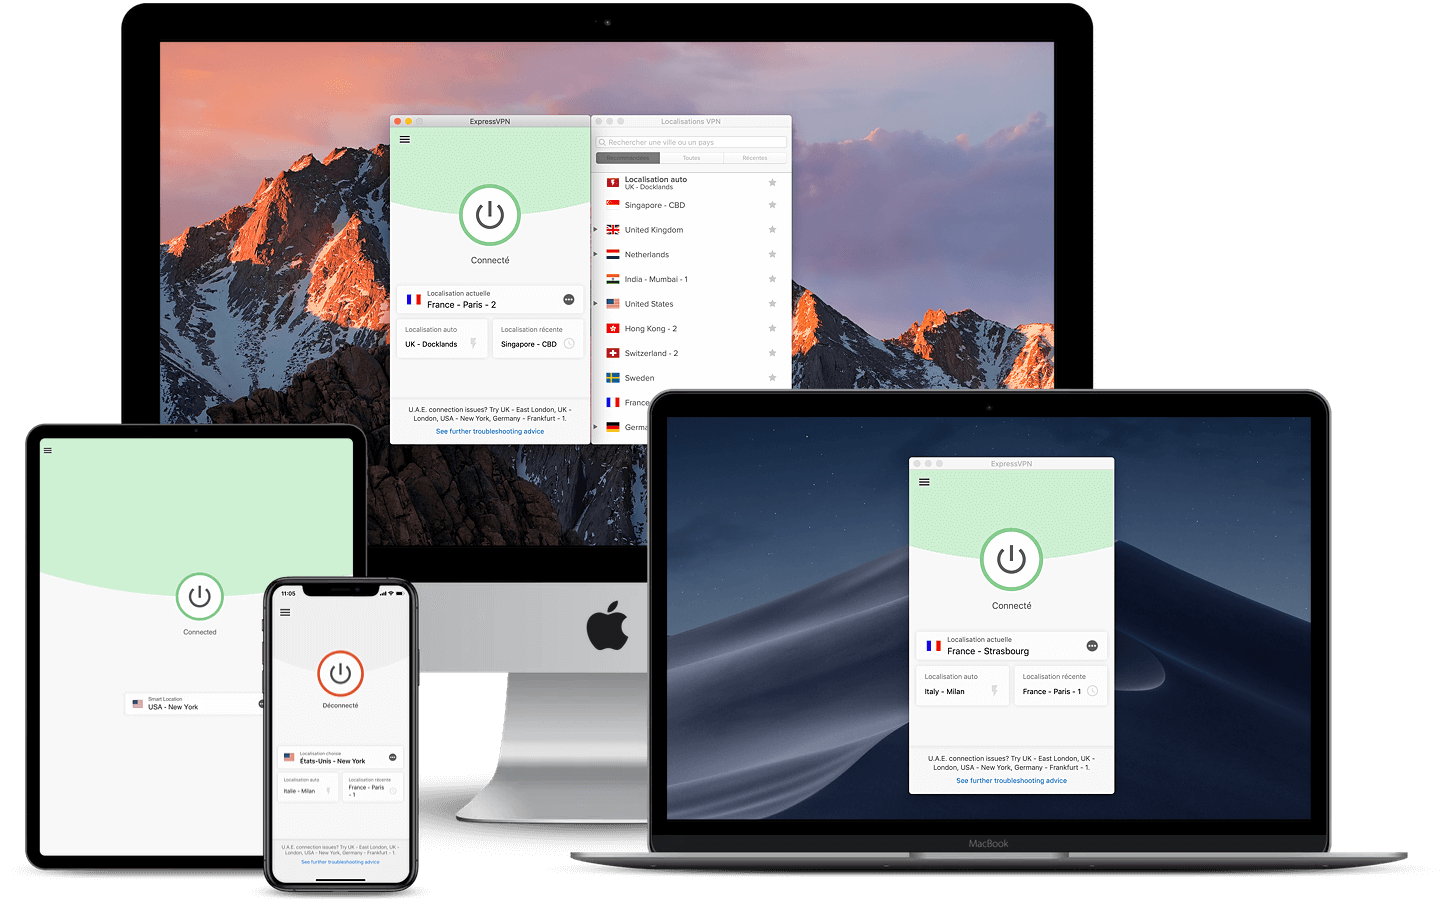 Applications ExpressVPN supports